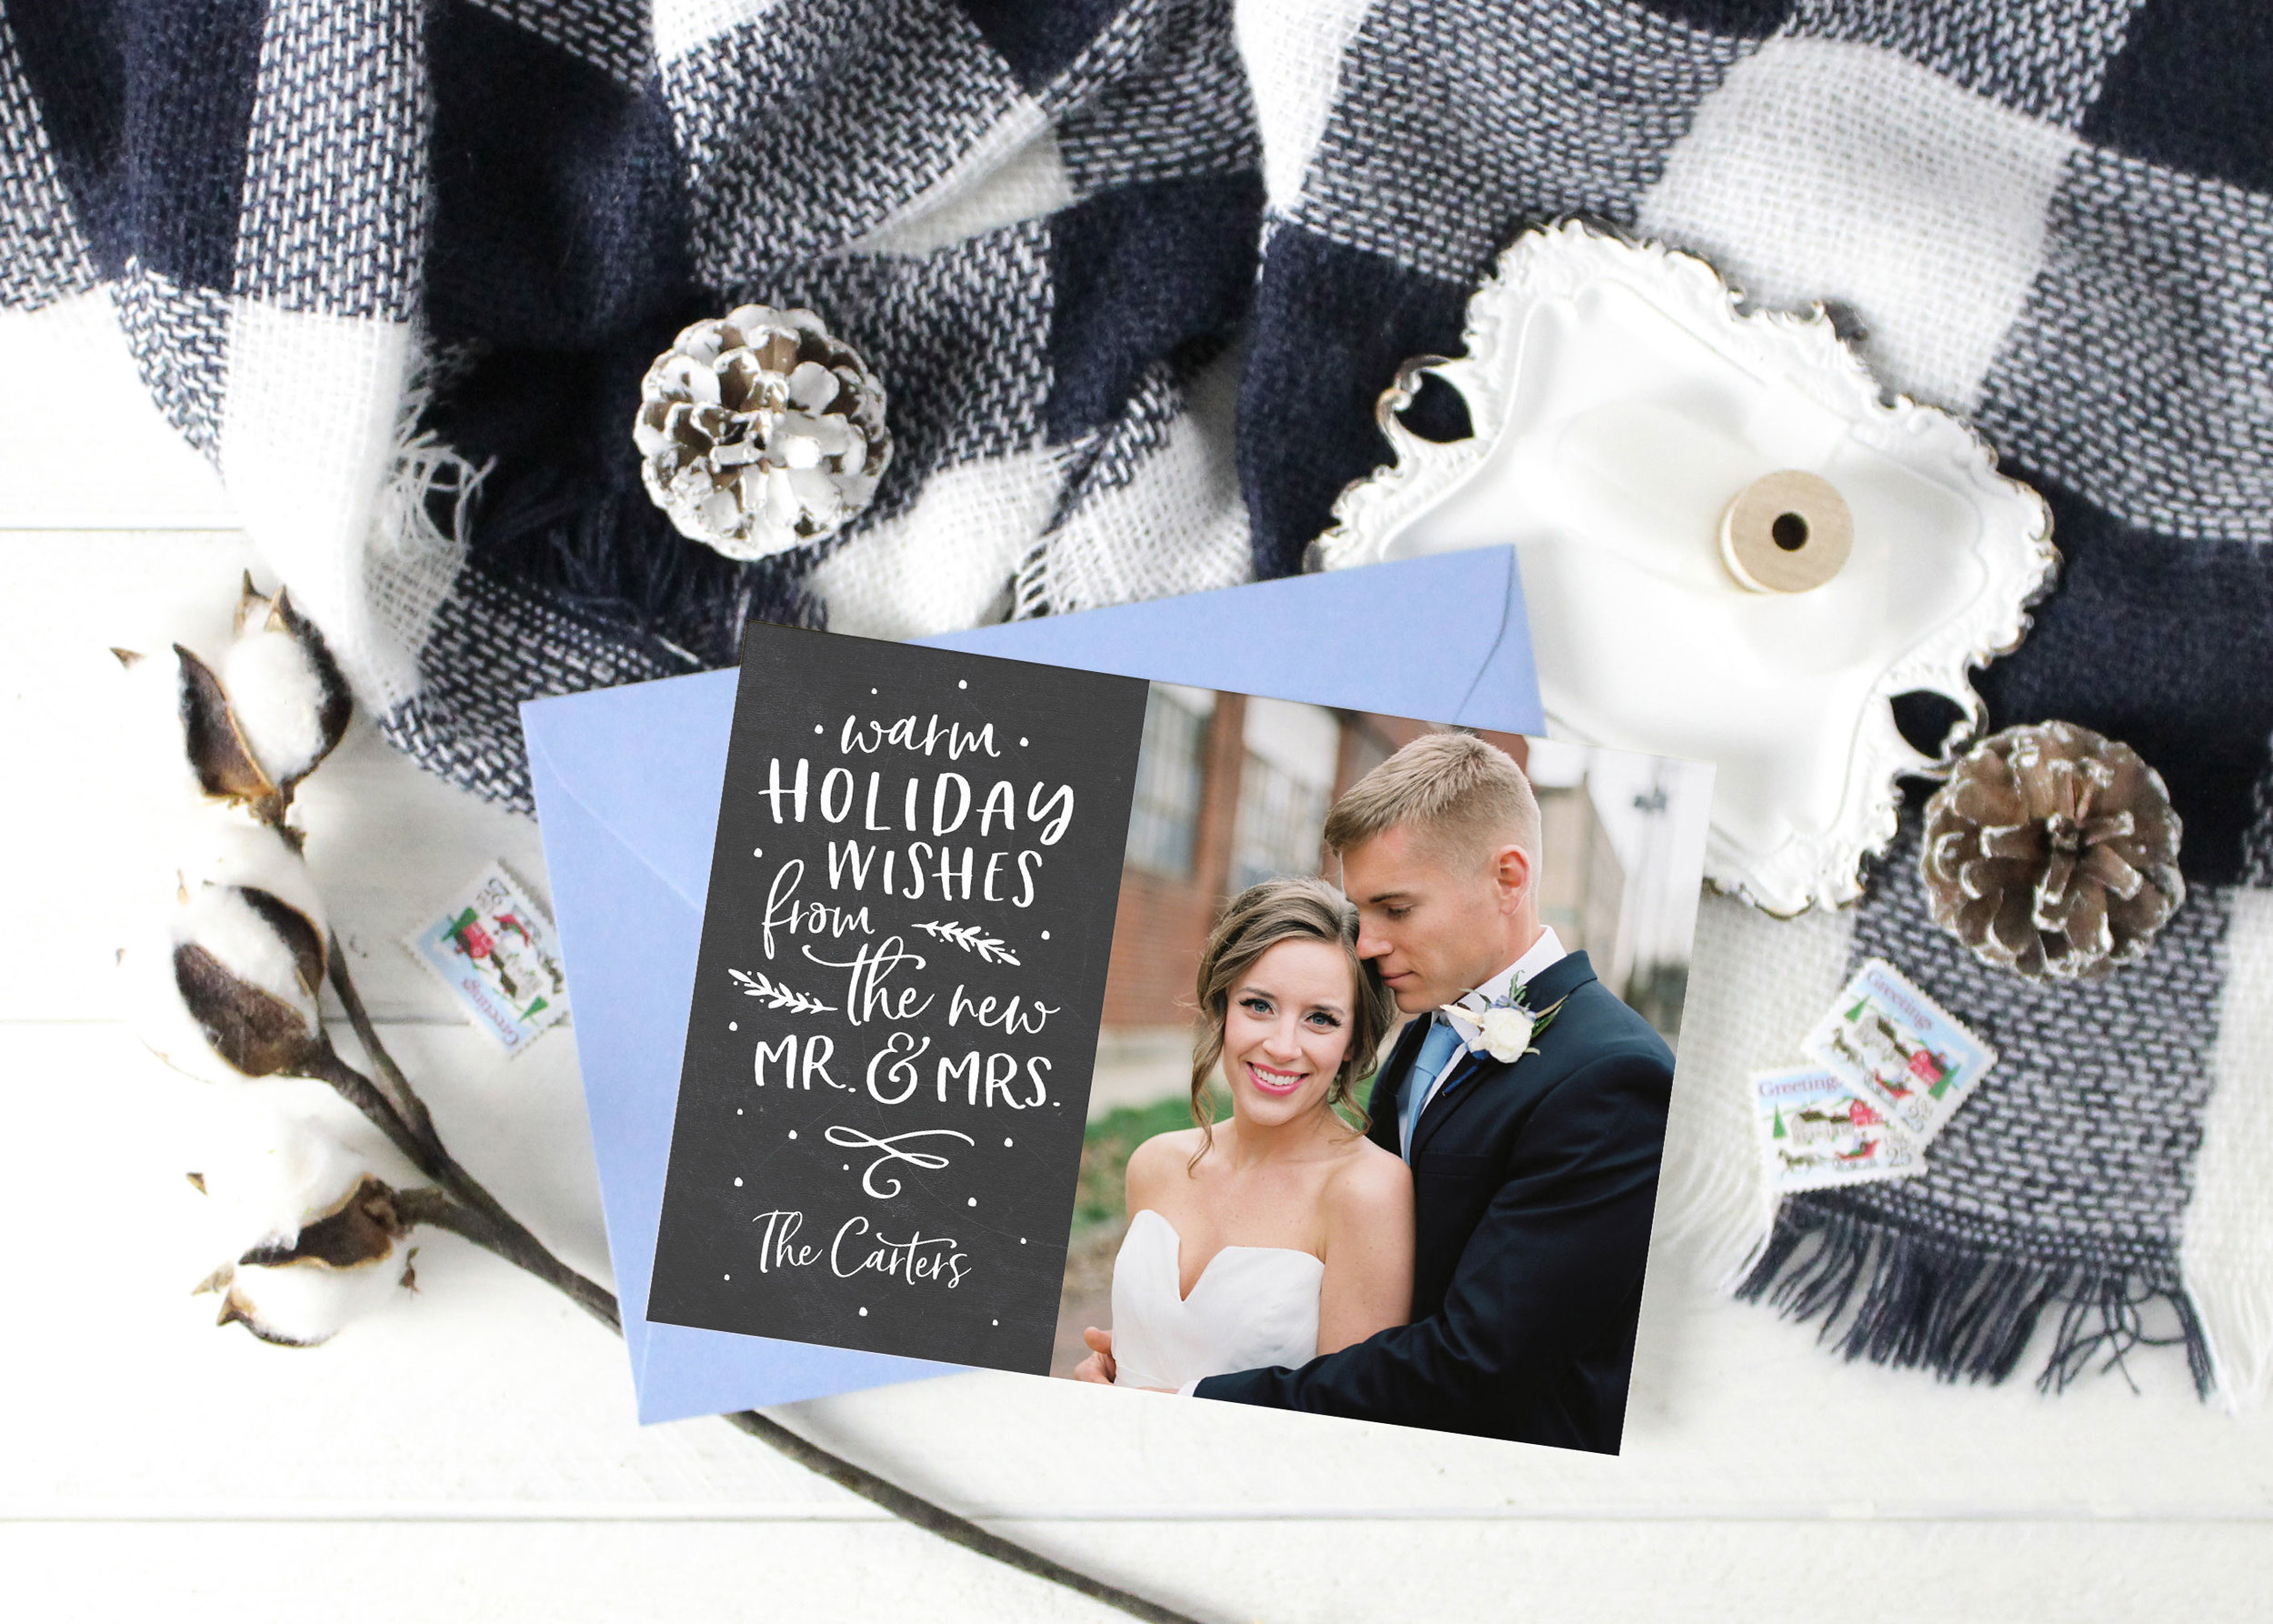 New Mr. and Mrs. Card